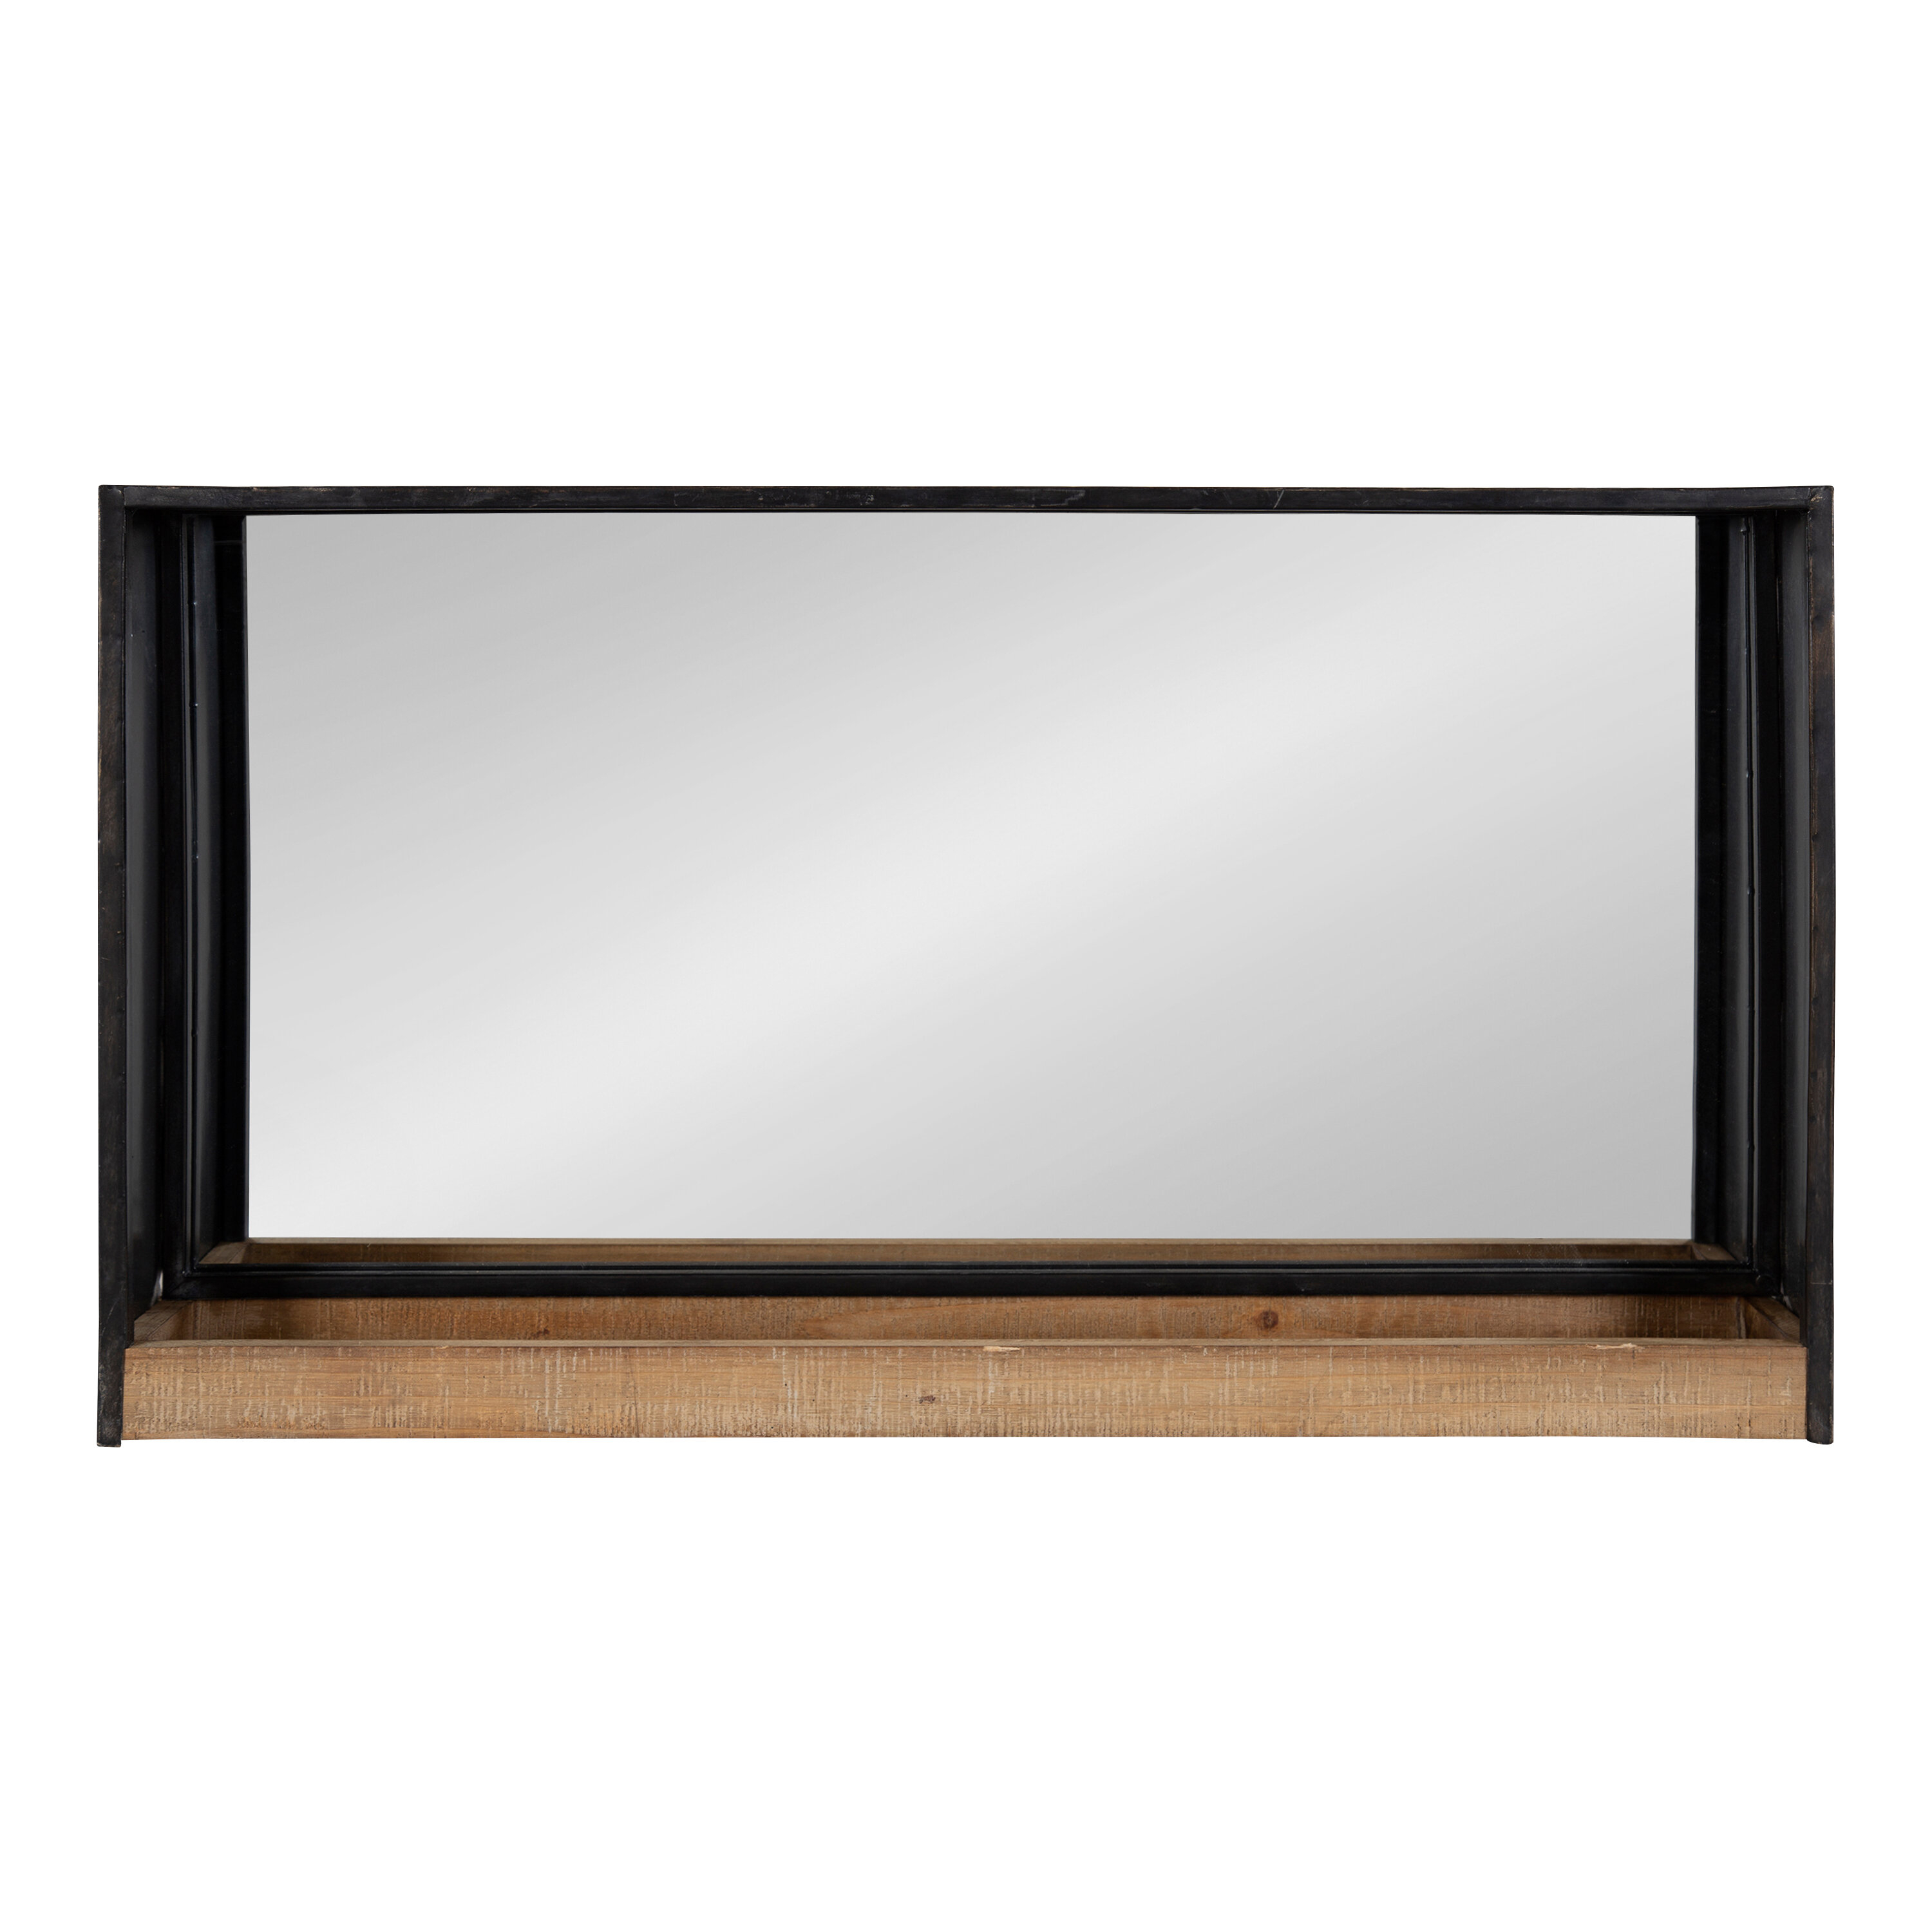 Coelho Casual Modern Beveled With Shelf Accent Mirror Throughout Modern & Contemporary Beveled Accent Mirrors (View 9 of 30)